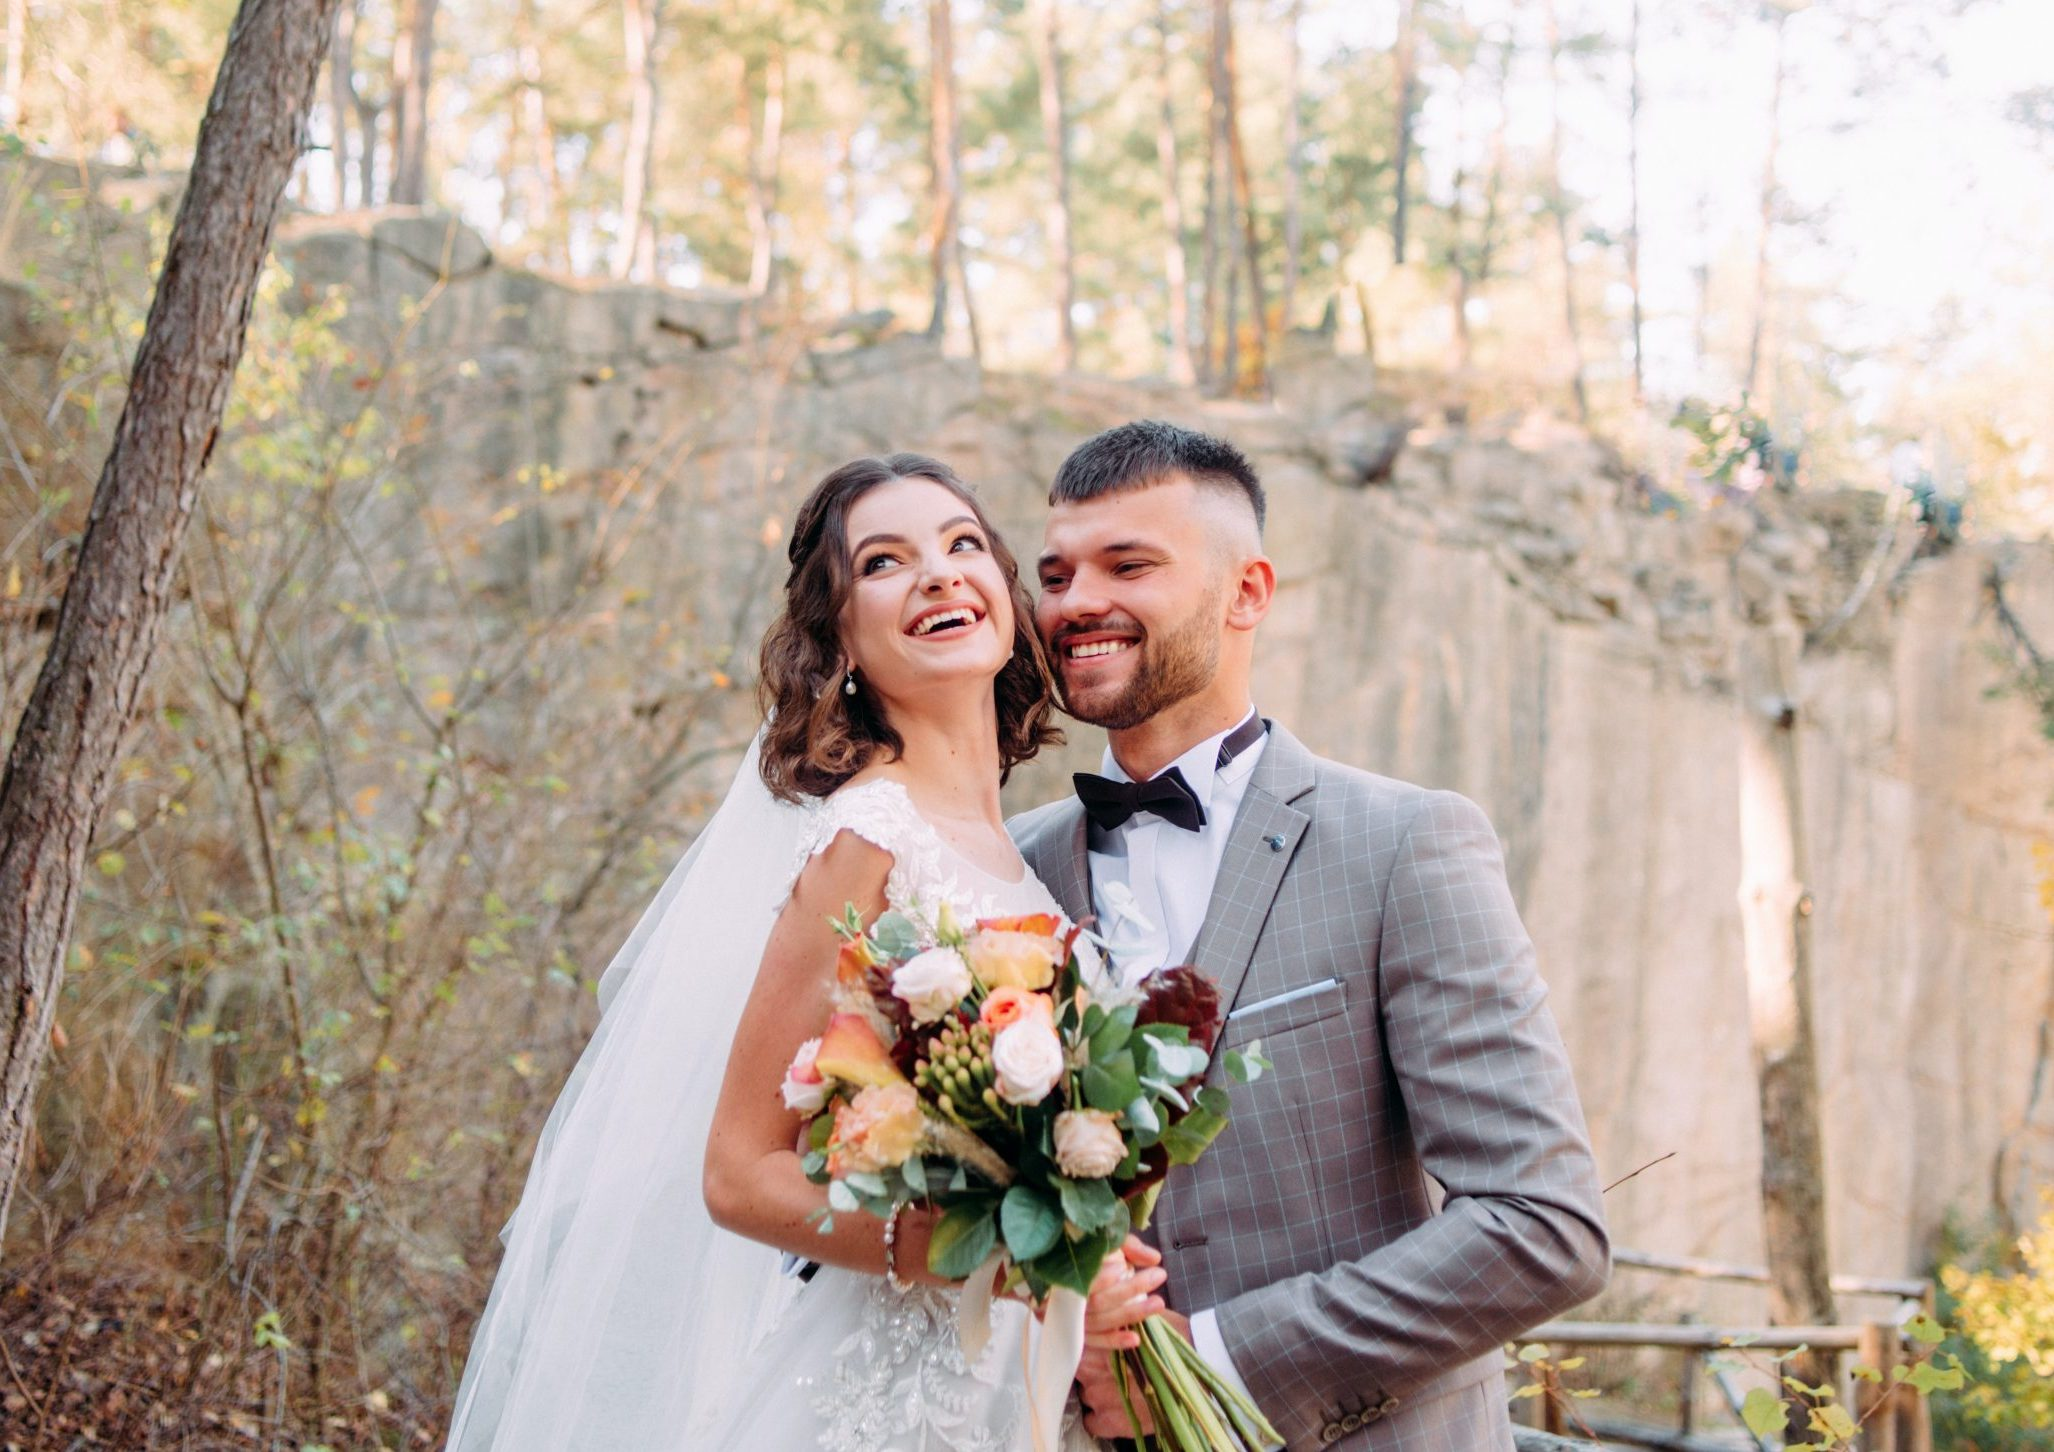 eugenivy now a0XDlgOF1uA unsplash scaled e1619606324295 Here Are The Cringiest Wedding Moments Ever Arranged By The Happy Couple Copy